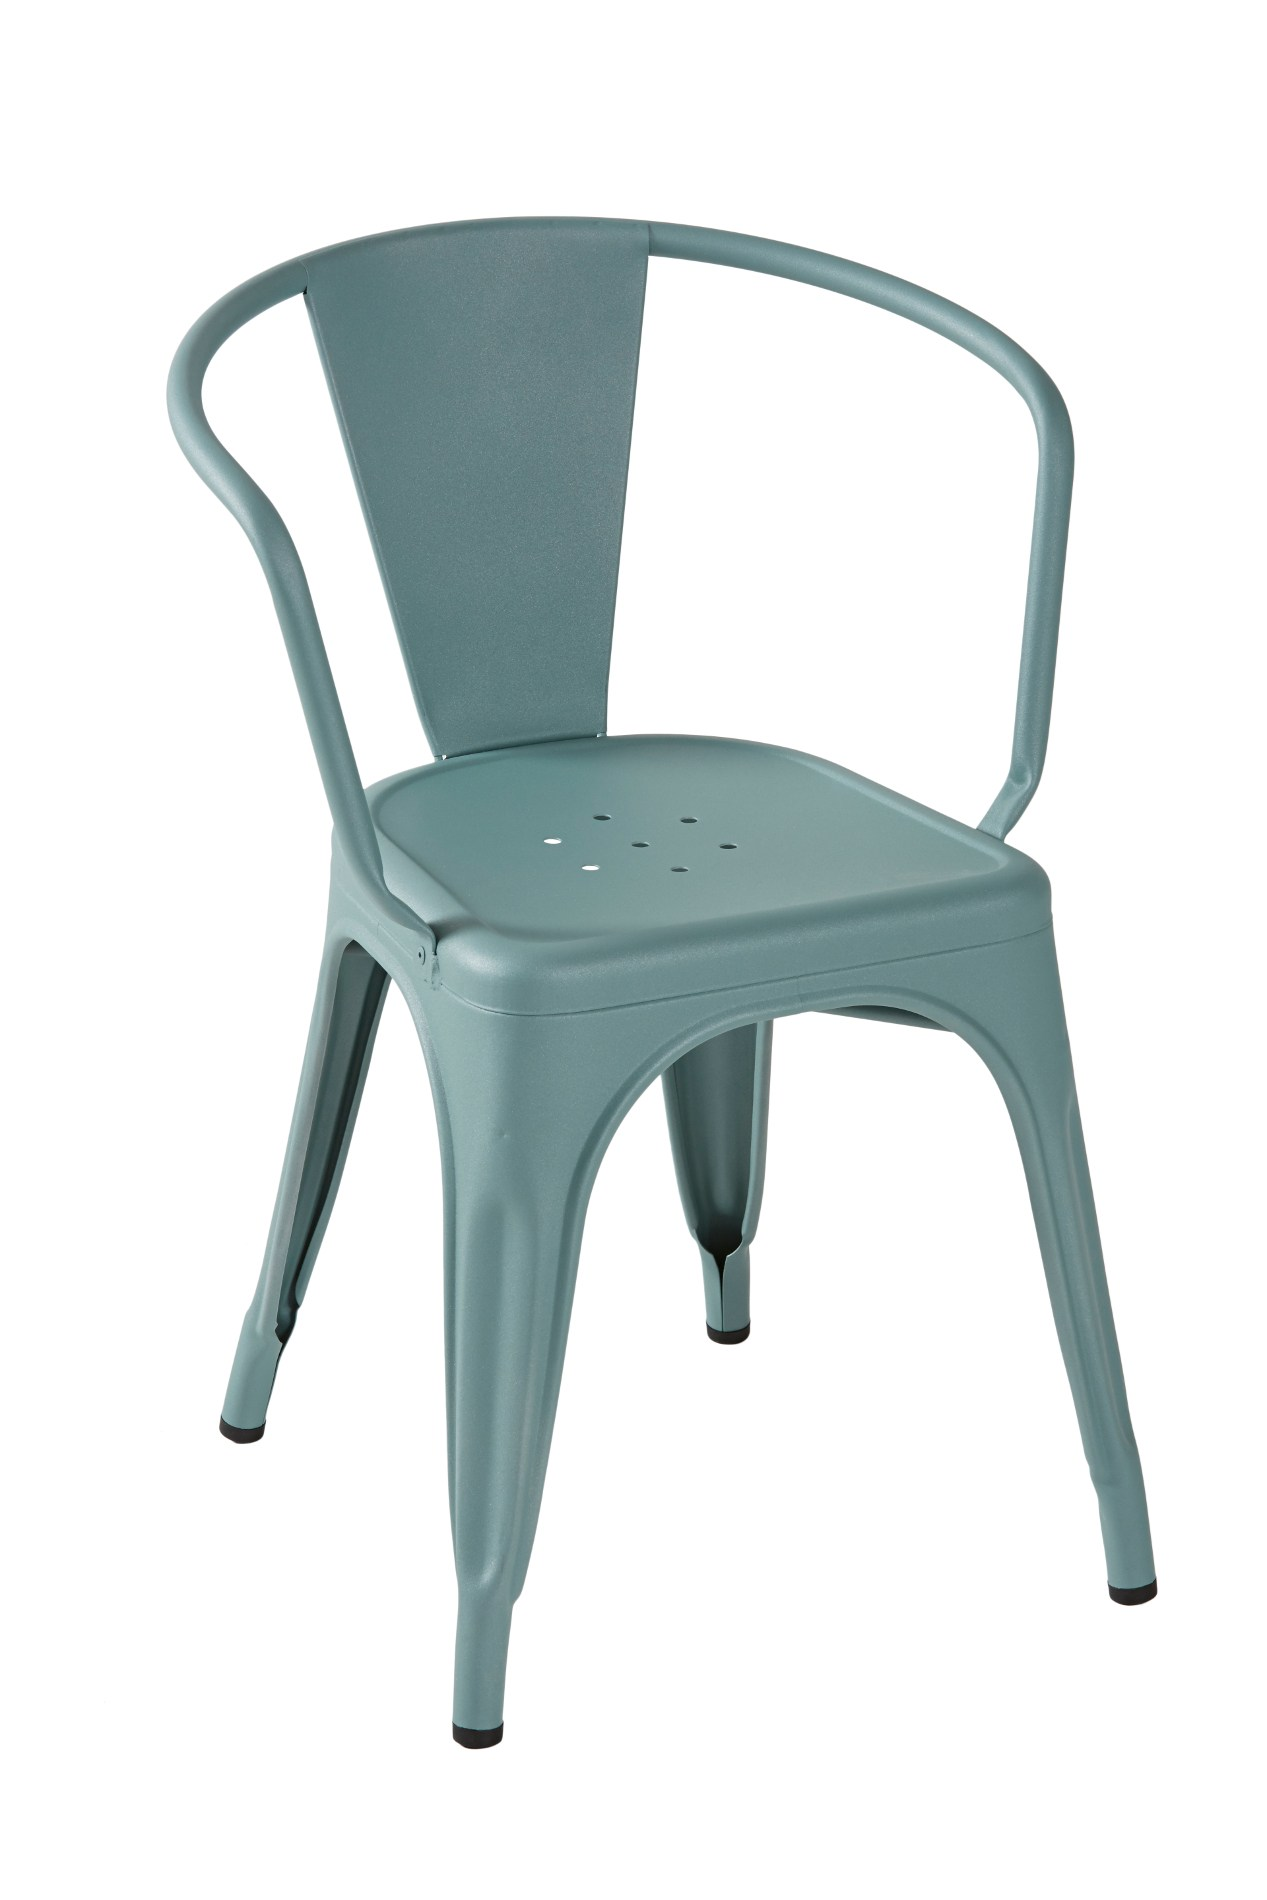 A56 metal chair by tolix steel design design jean pauchard for Metal design chair